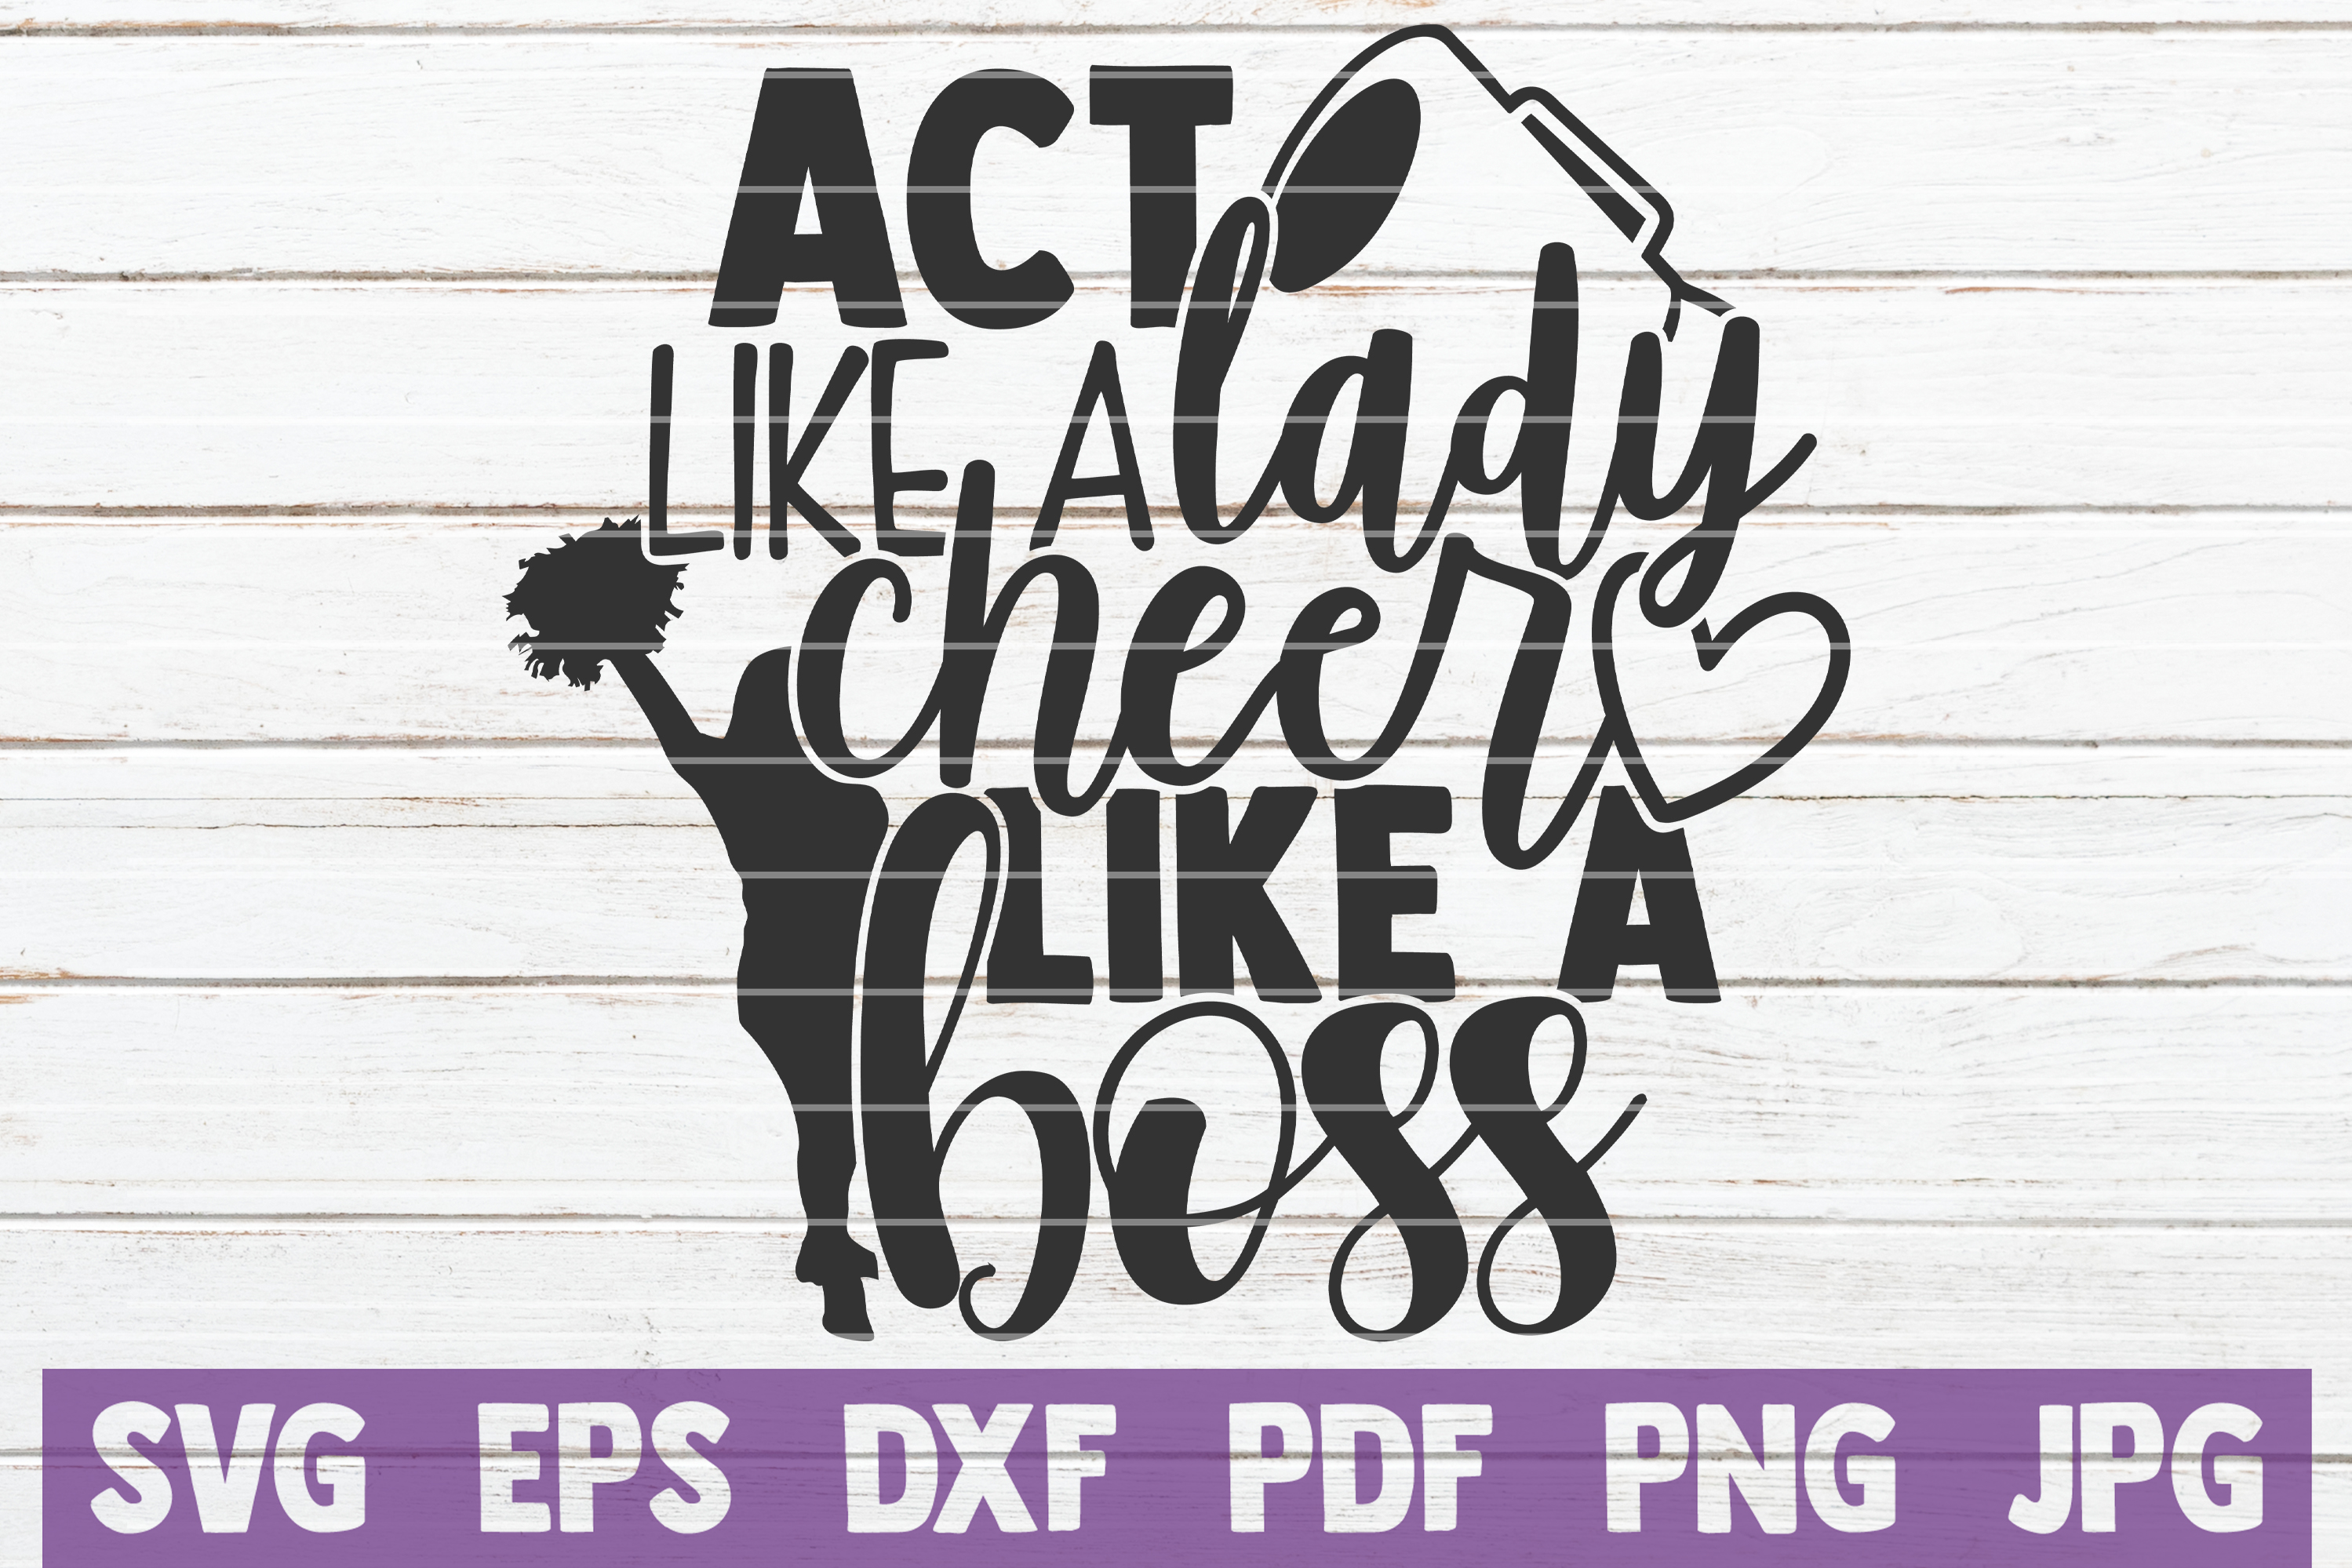 Download Free Act Like A Lady Cheer Like A Boss Graphic By Mintymarshmallows for Cricut Explore, Silhouette and other cutting machines.